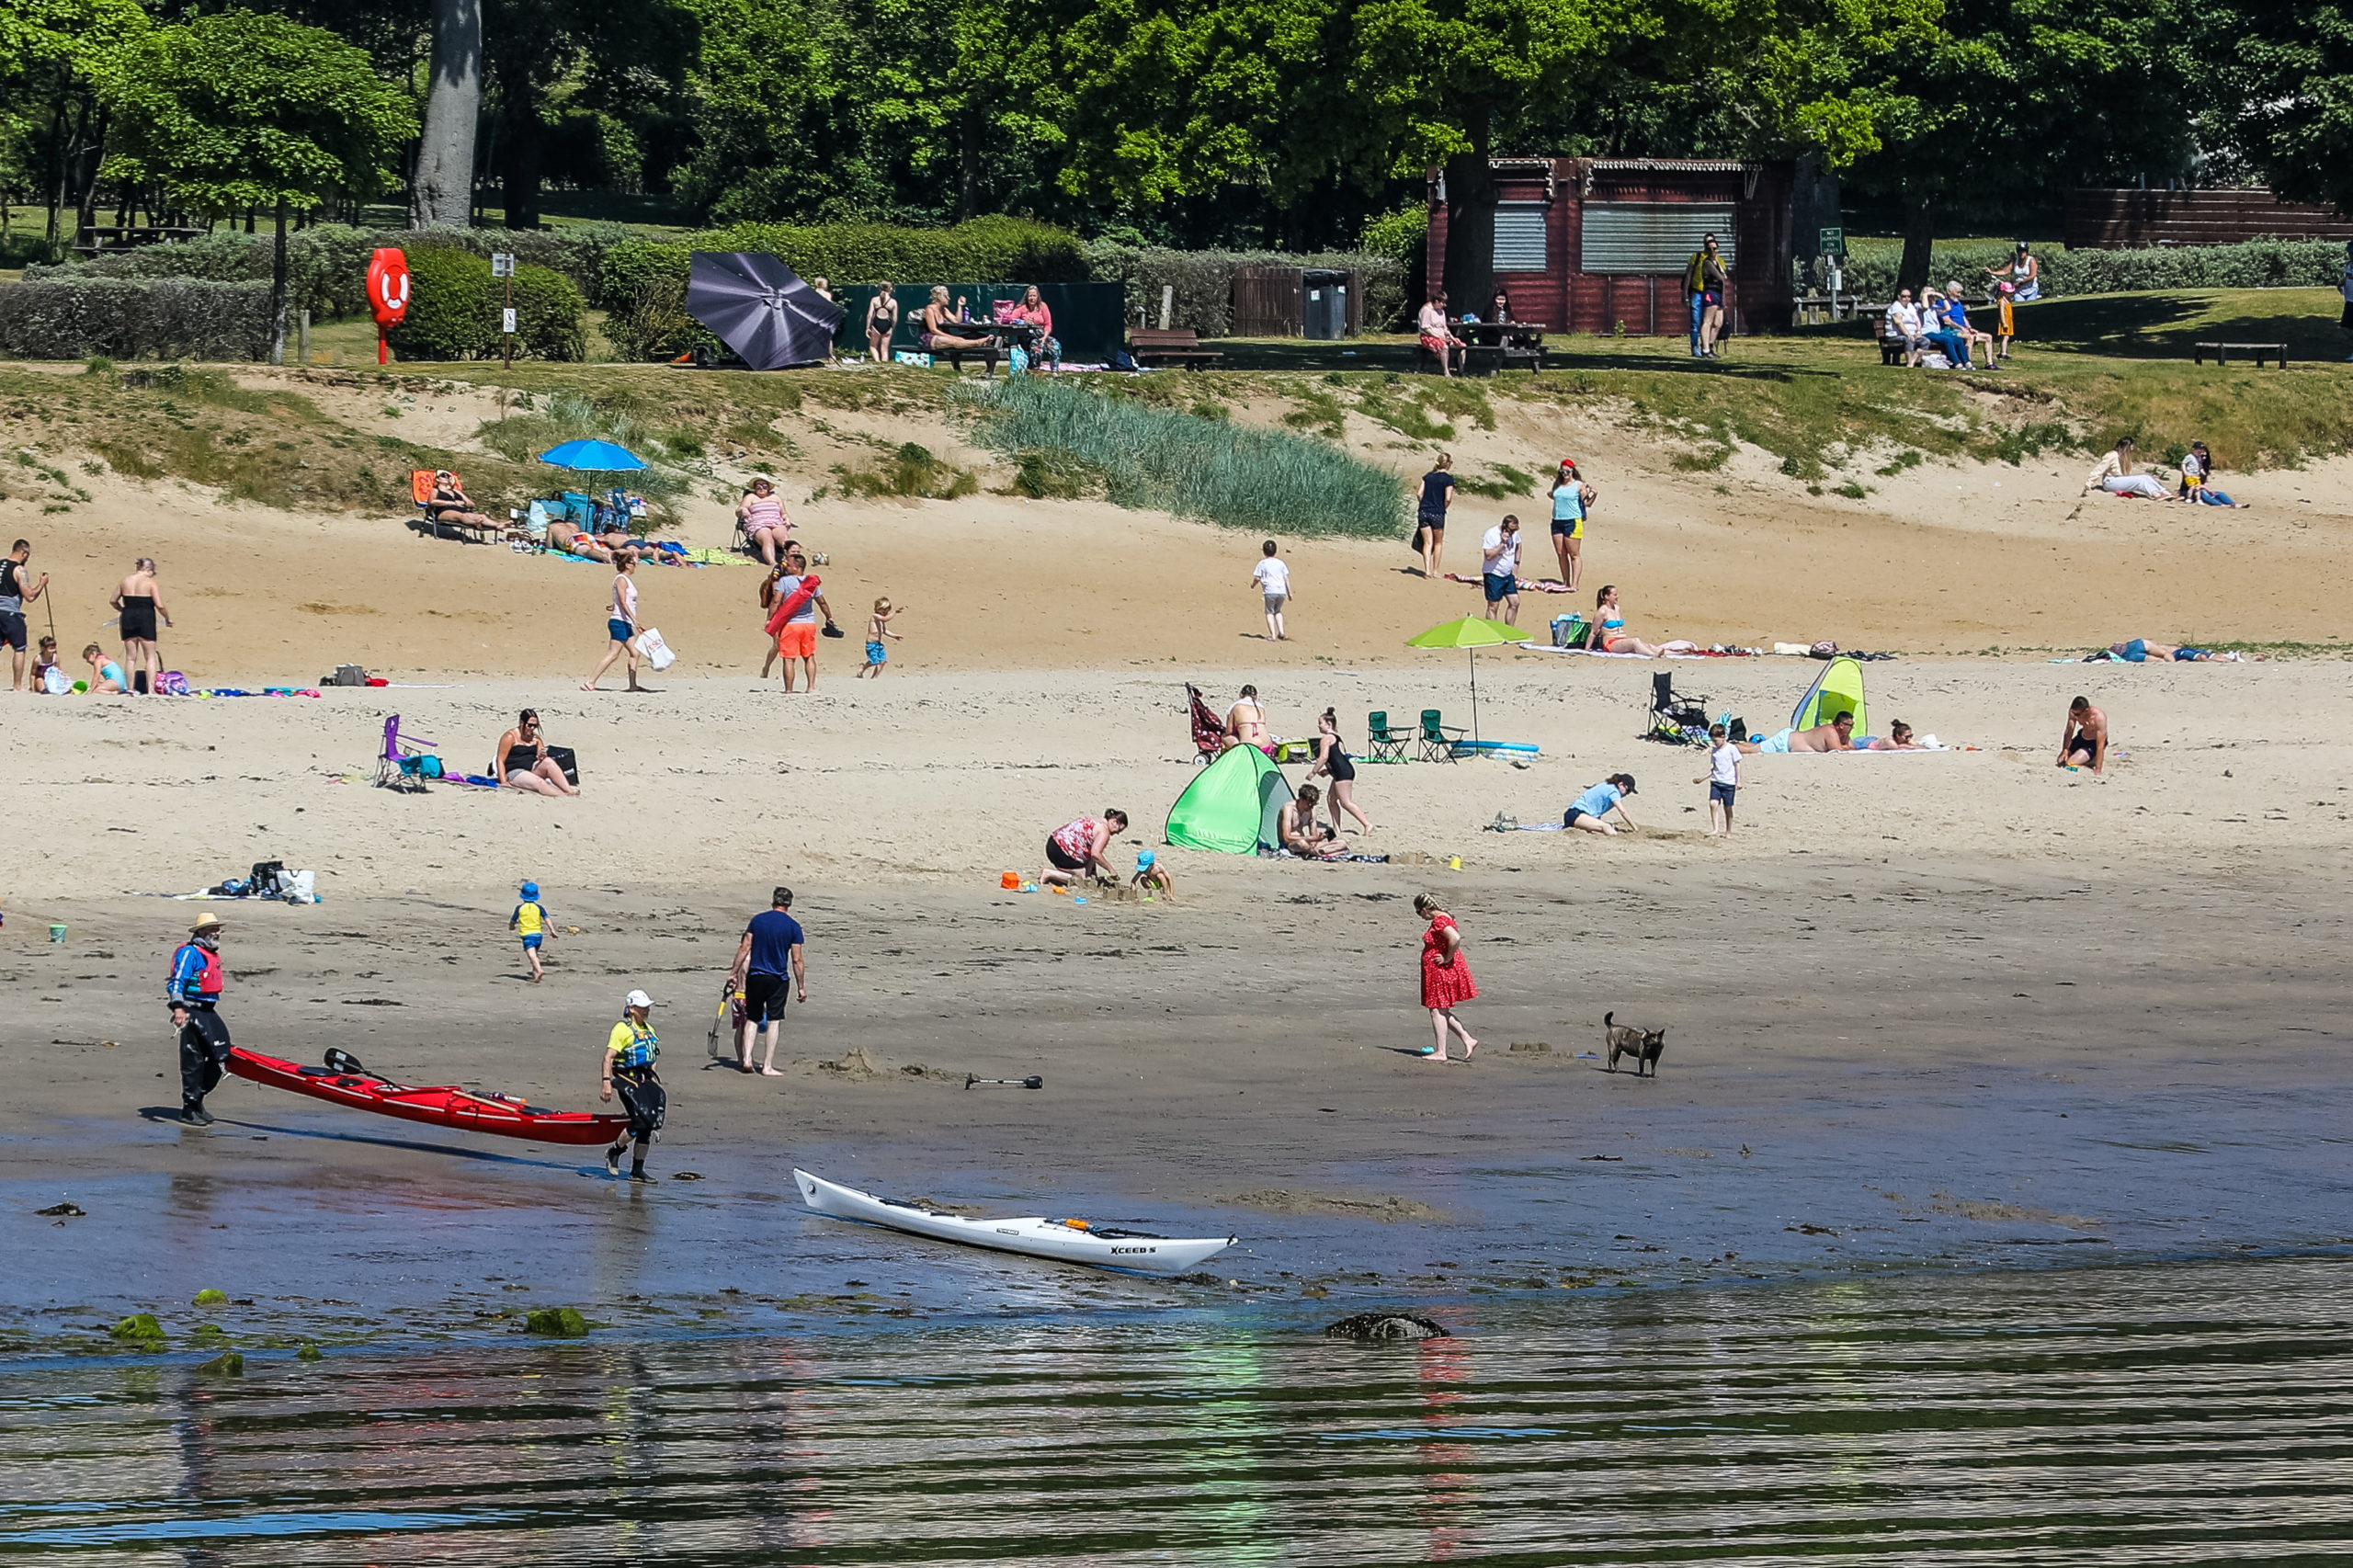 Canoeists take to the water off Silversands Beach in Aberdour.